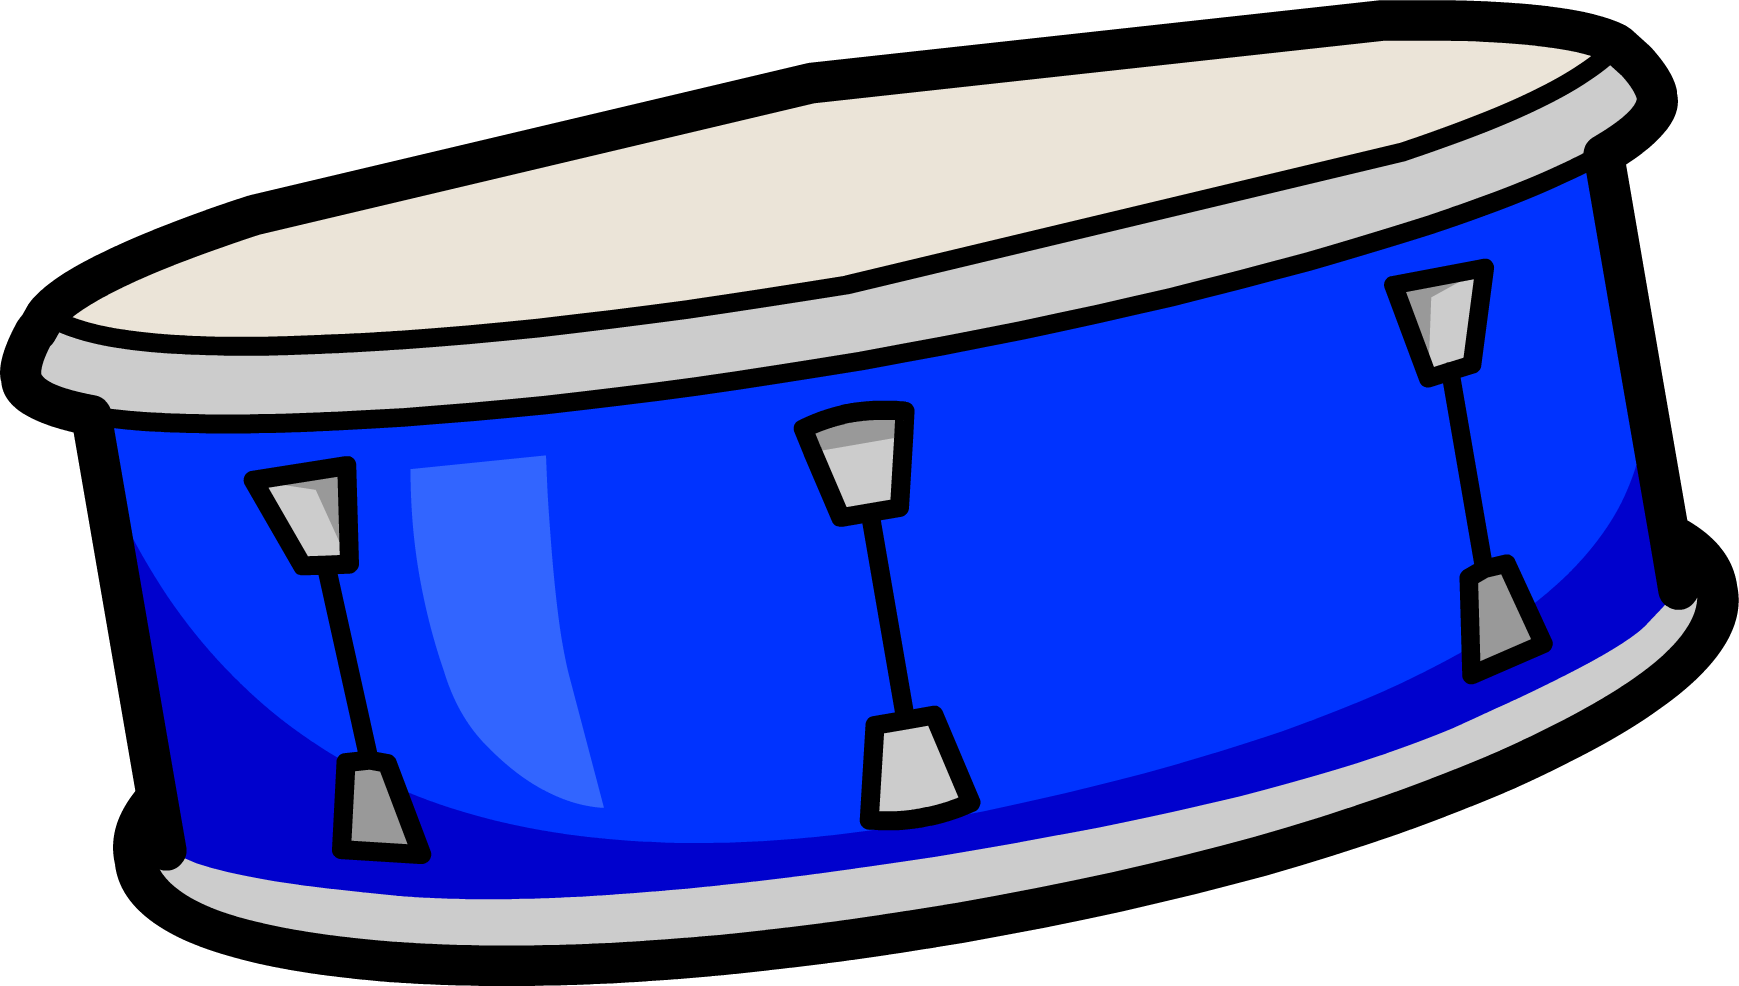 image blue snare drum png club penguin wiki fandom powered by wikia. Black Bedroom Furniture Sets. Home Design Ideas